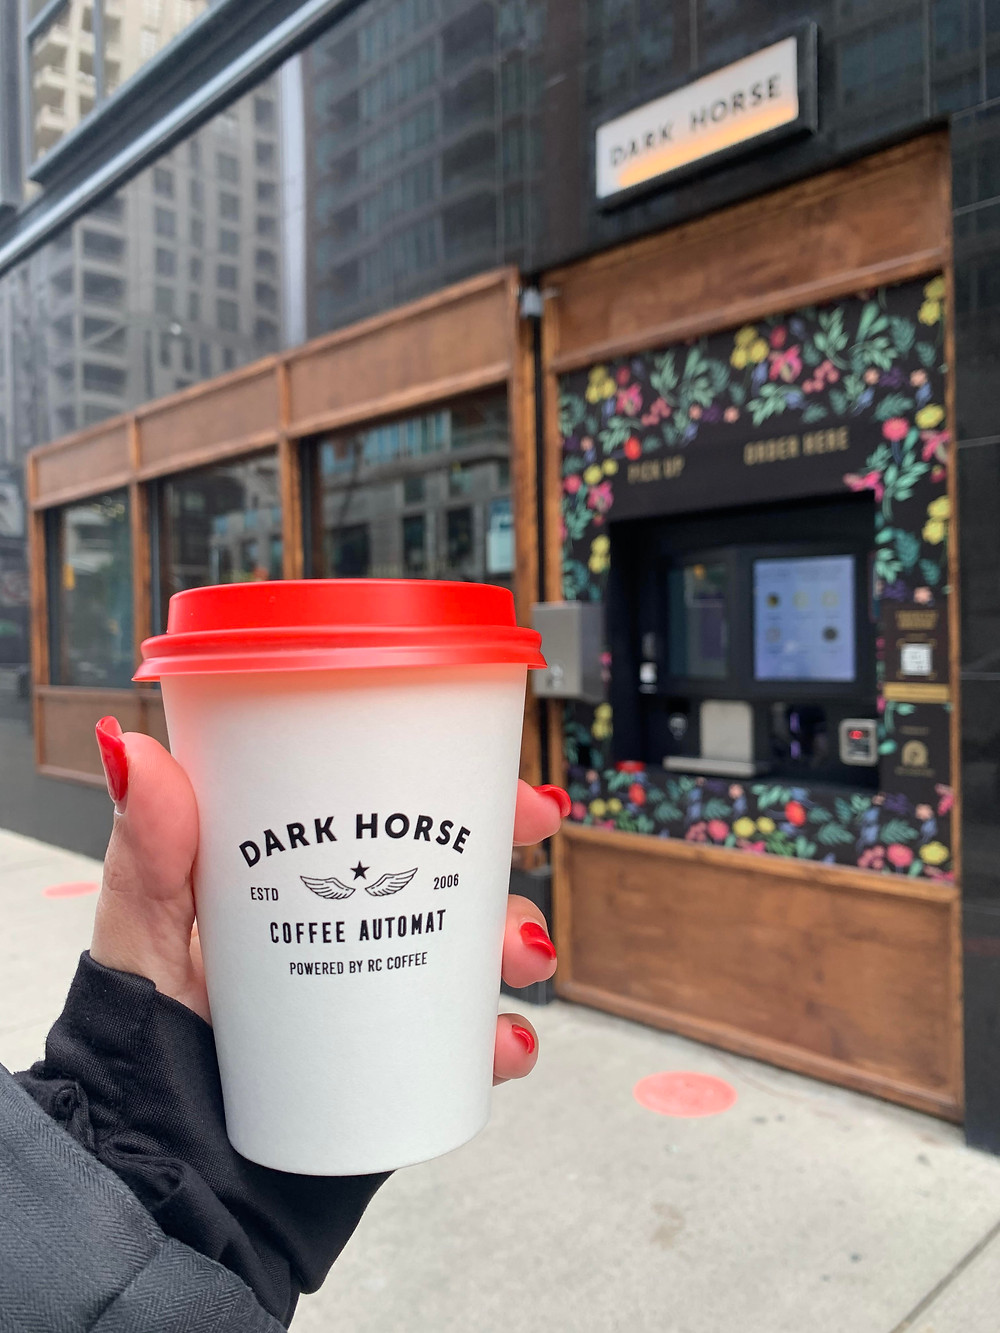 Dark Horse Coffee Automat by RC Coffee located in Yorkville Toronto